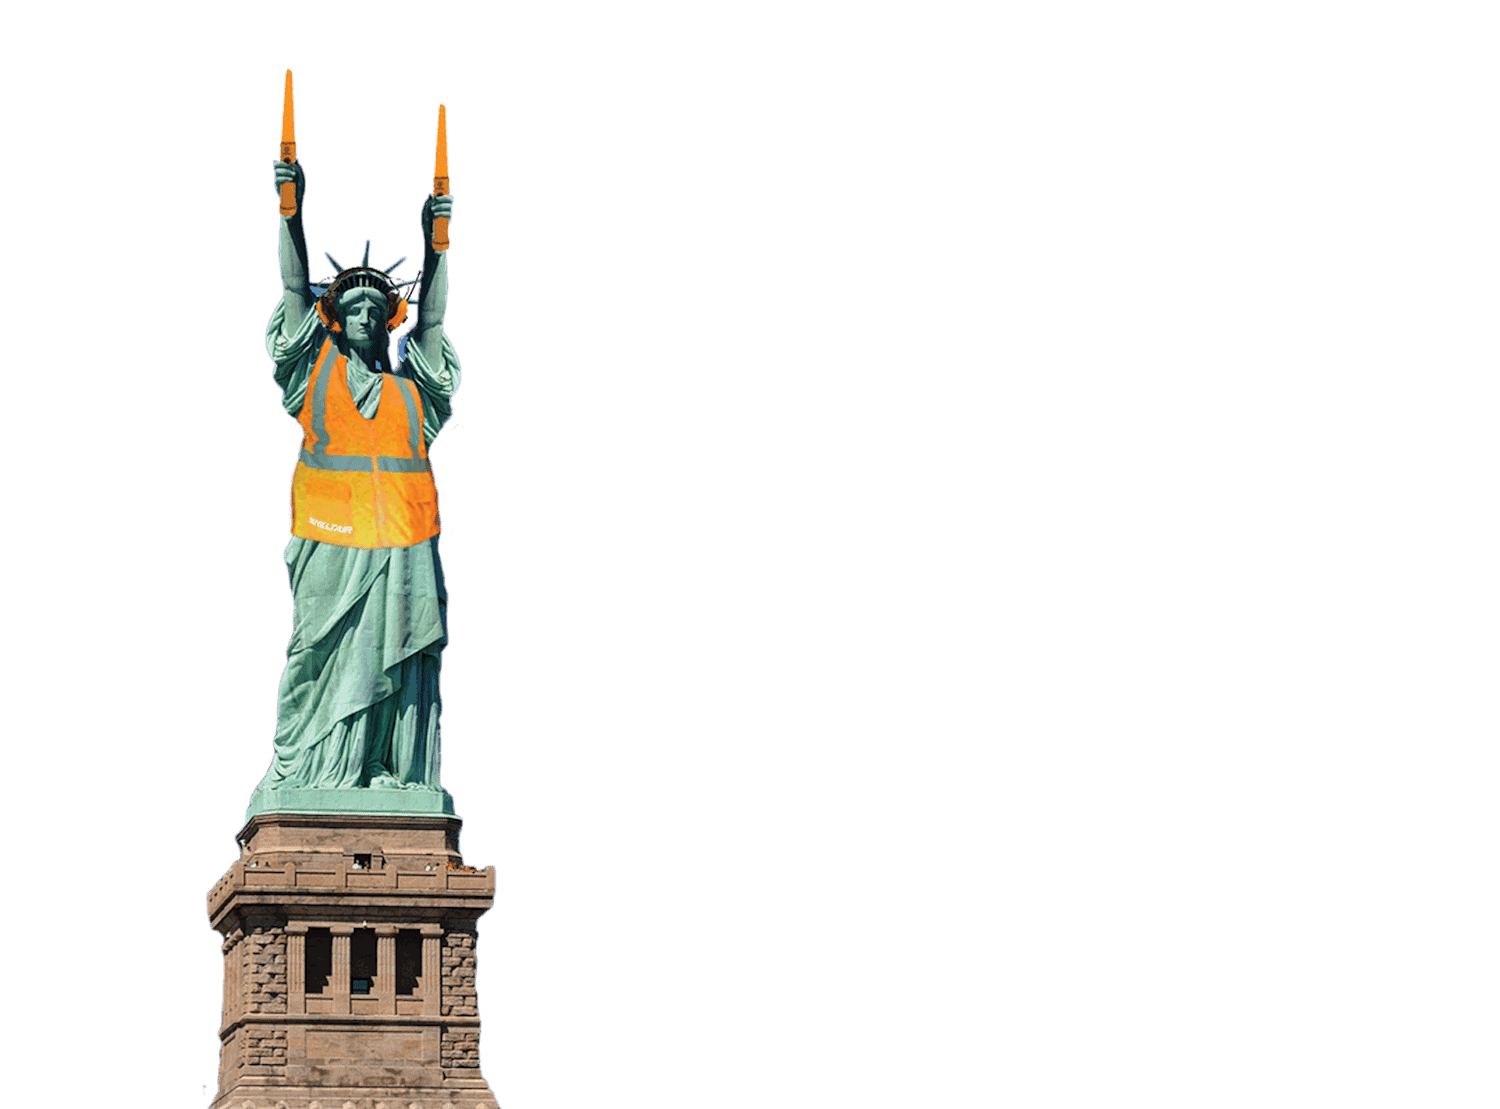 StatueOfLiberty_lower